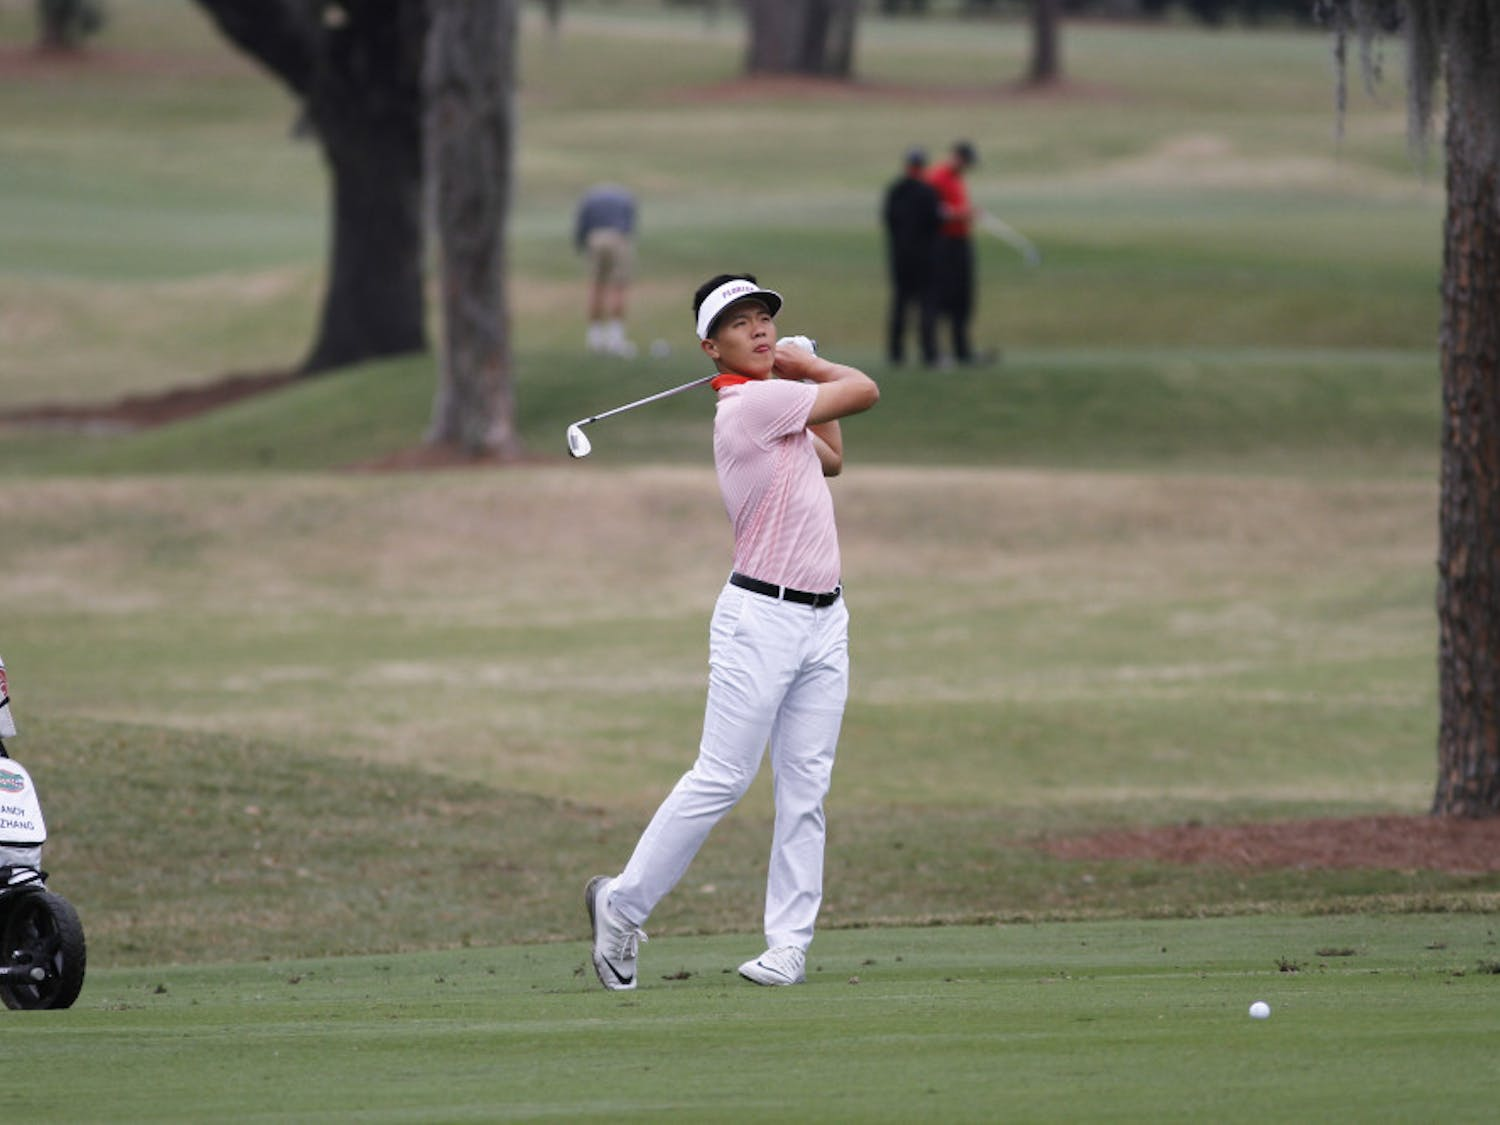 Sophomore Andy Zhang is tied for first heading into the final day of the NCAA Kissimmee Regional. He's at 8 under with freshman John Axelsen just behind him at 7 under.